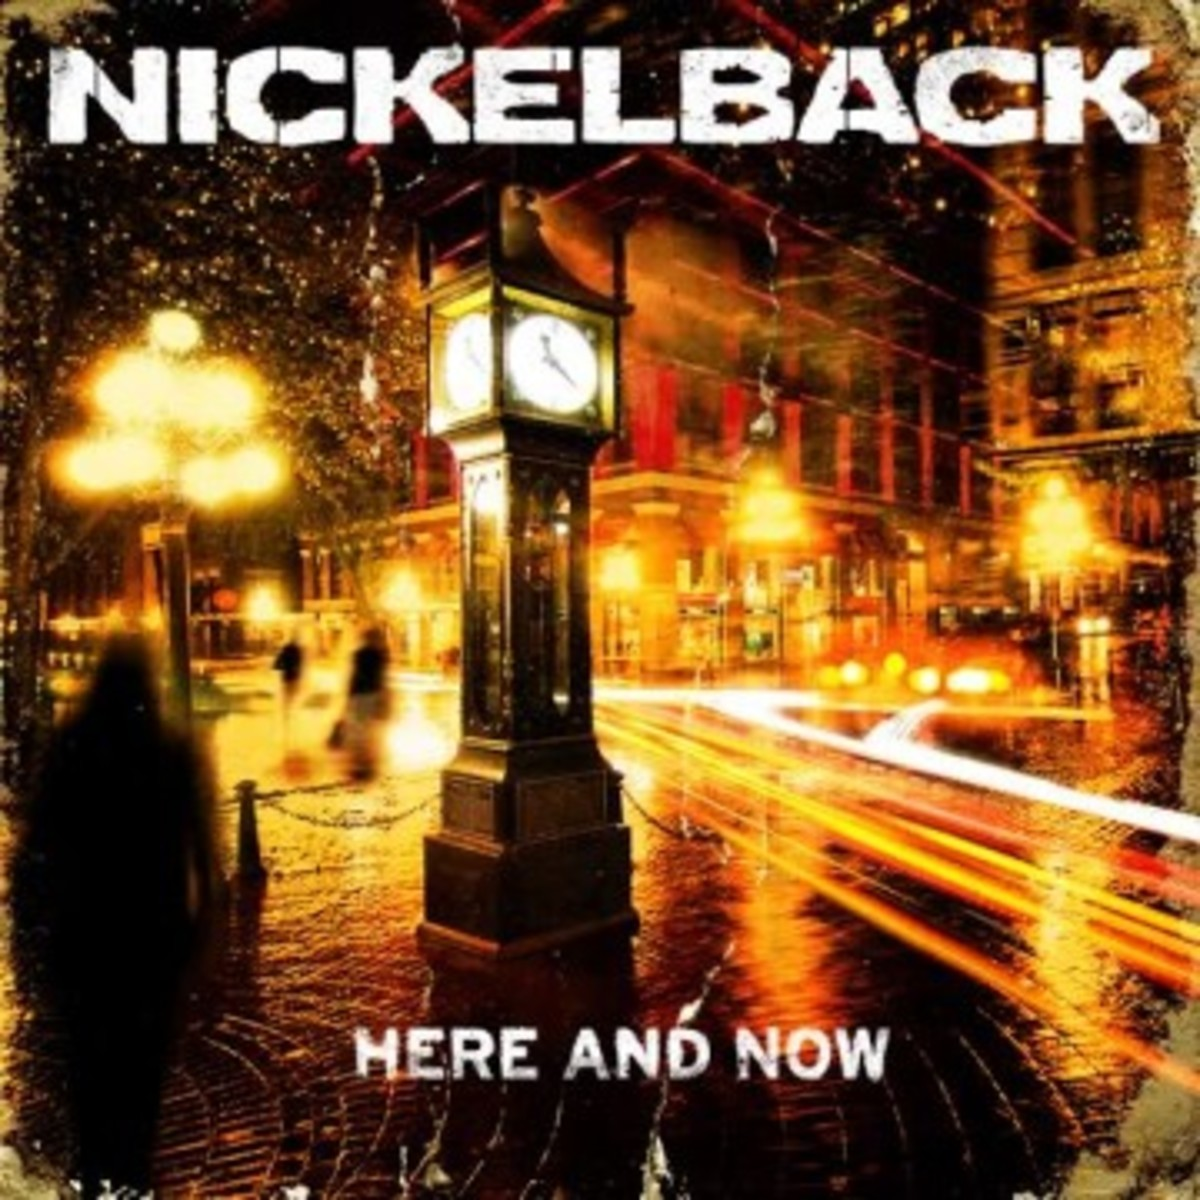 Nickelback's Here and Now album cover